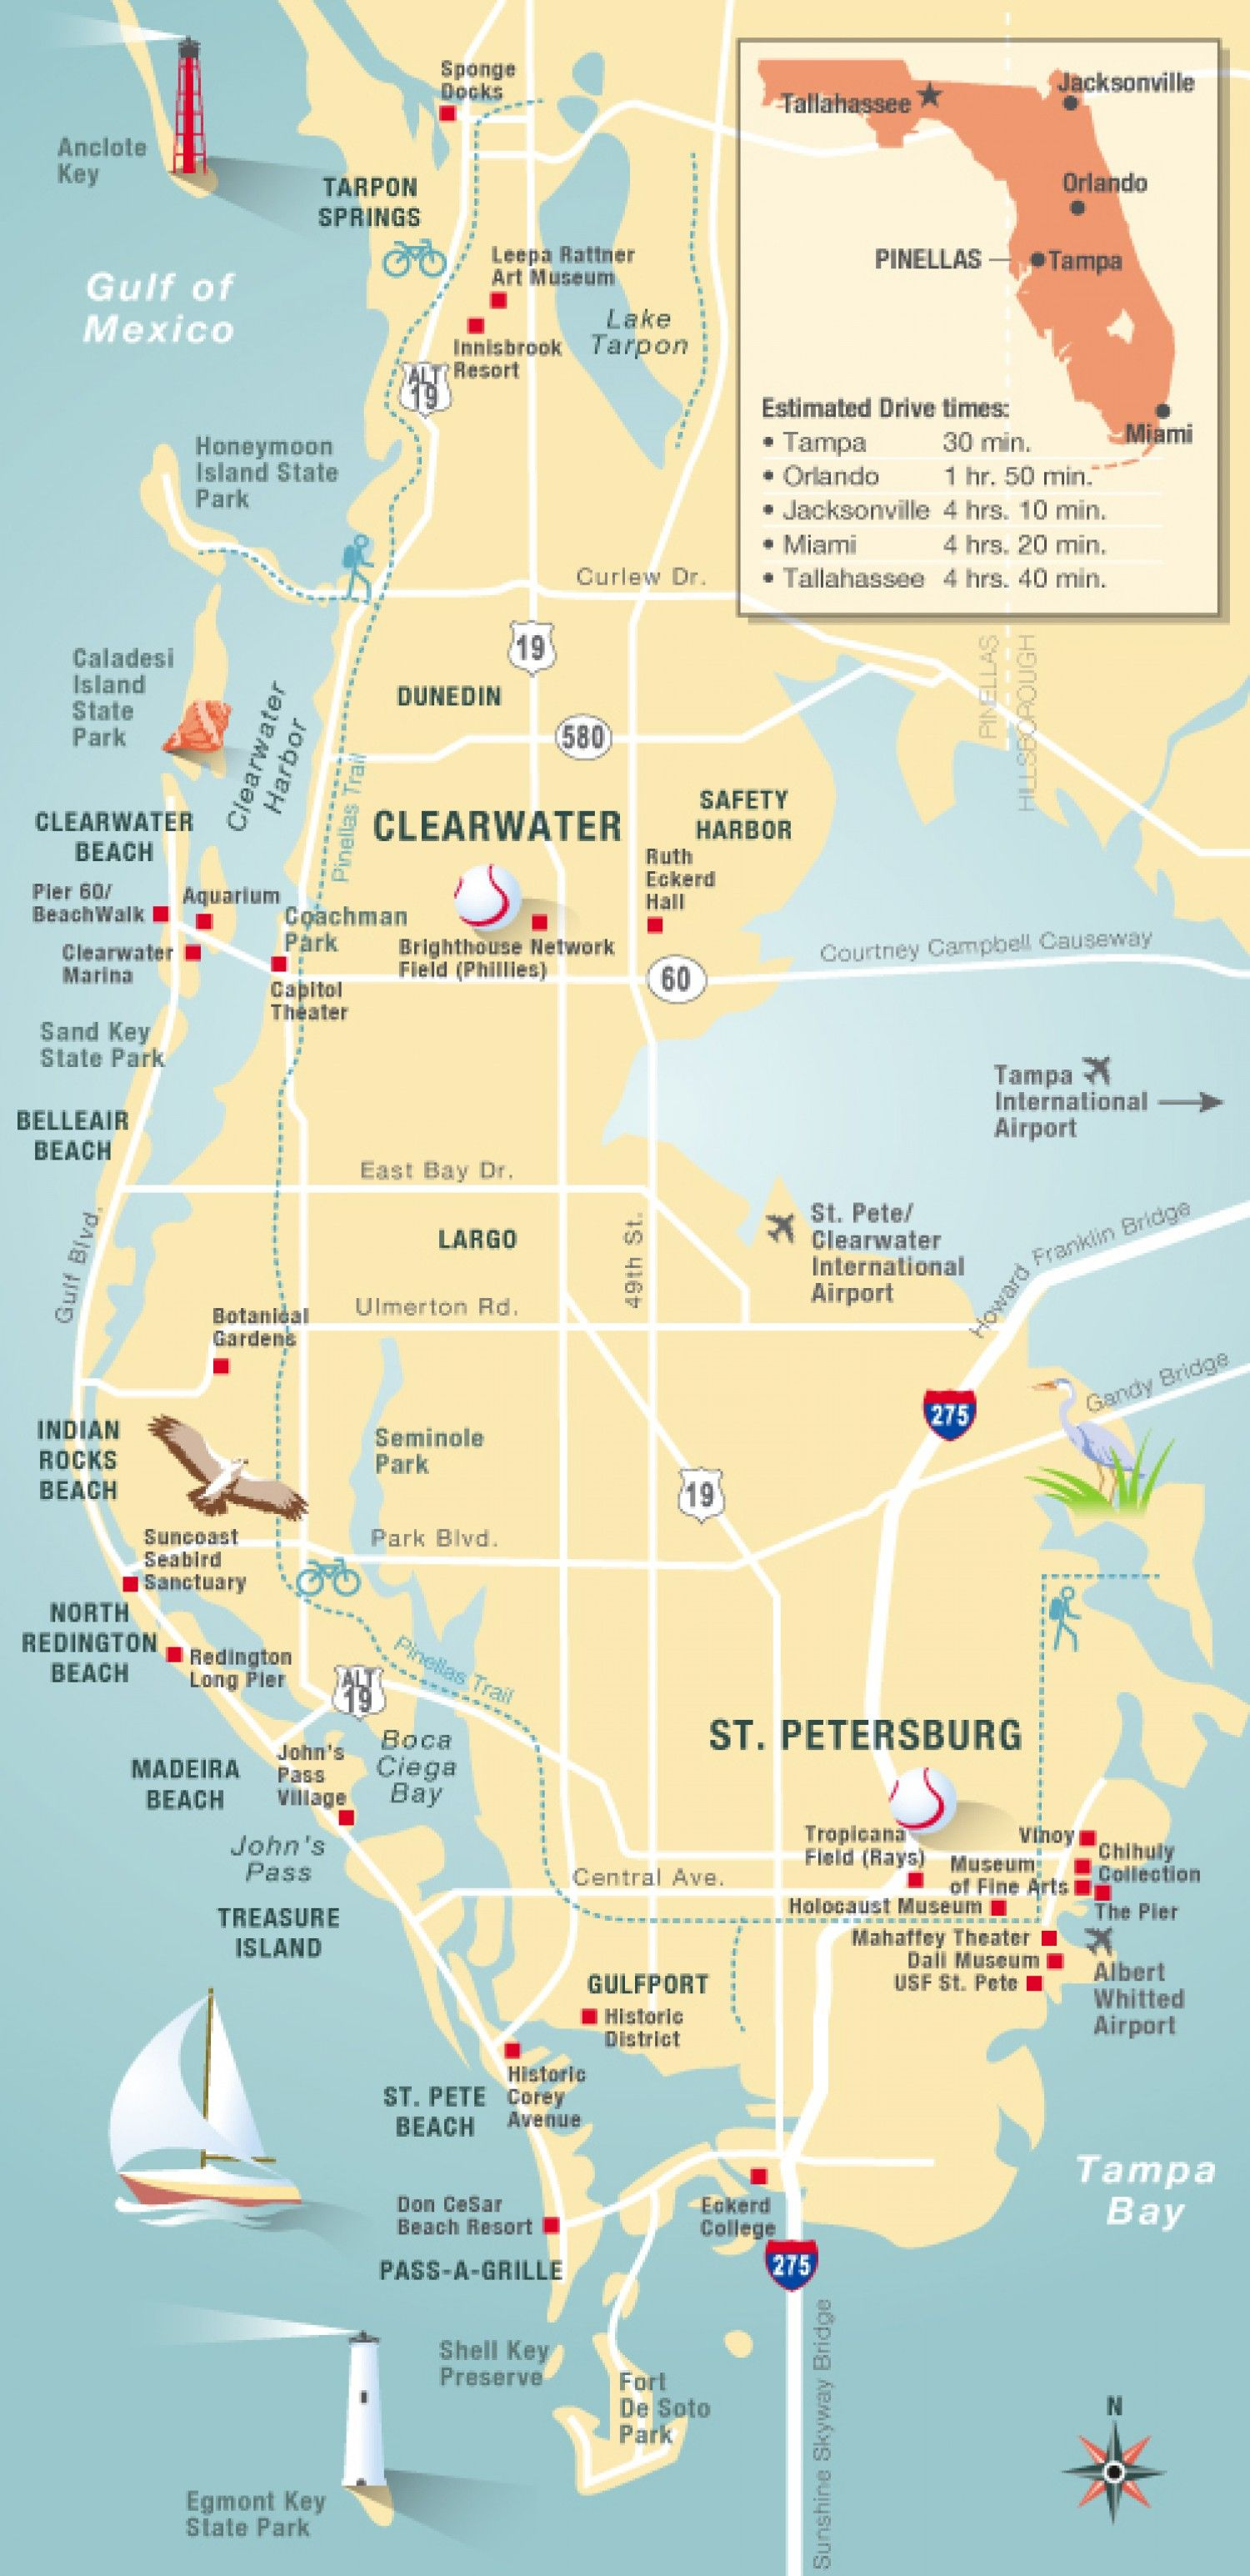 Pinellas County Map Clearwater, St Petersburg, Fl | Travel-Ohhhhh - Florida Gulf Coast Towns Map